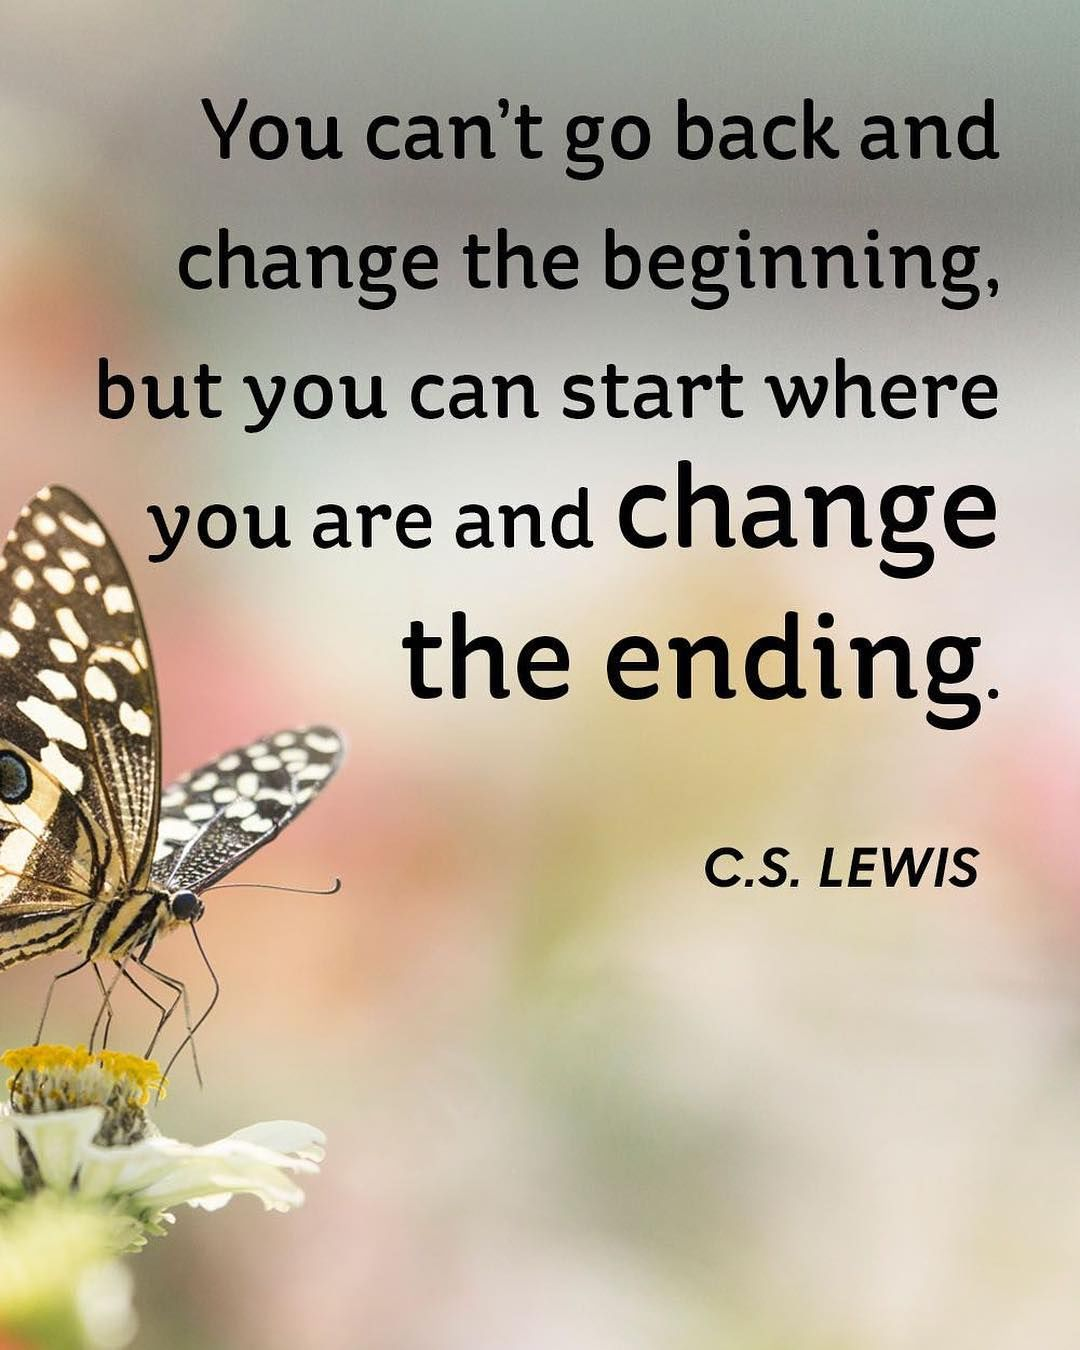 You Can't Go Back And Change The Beginning, But You Can